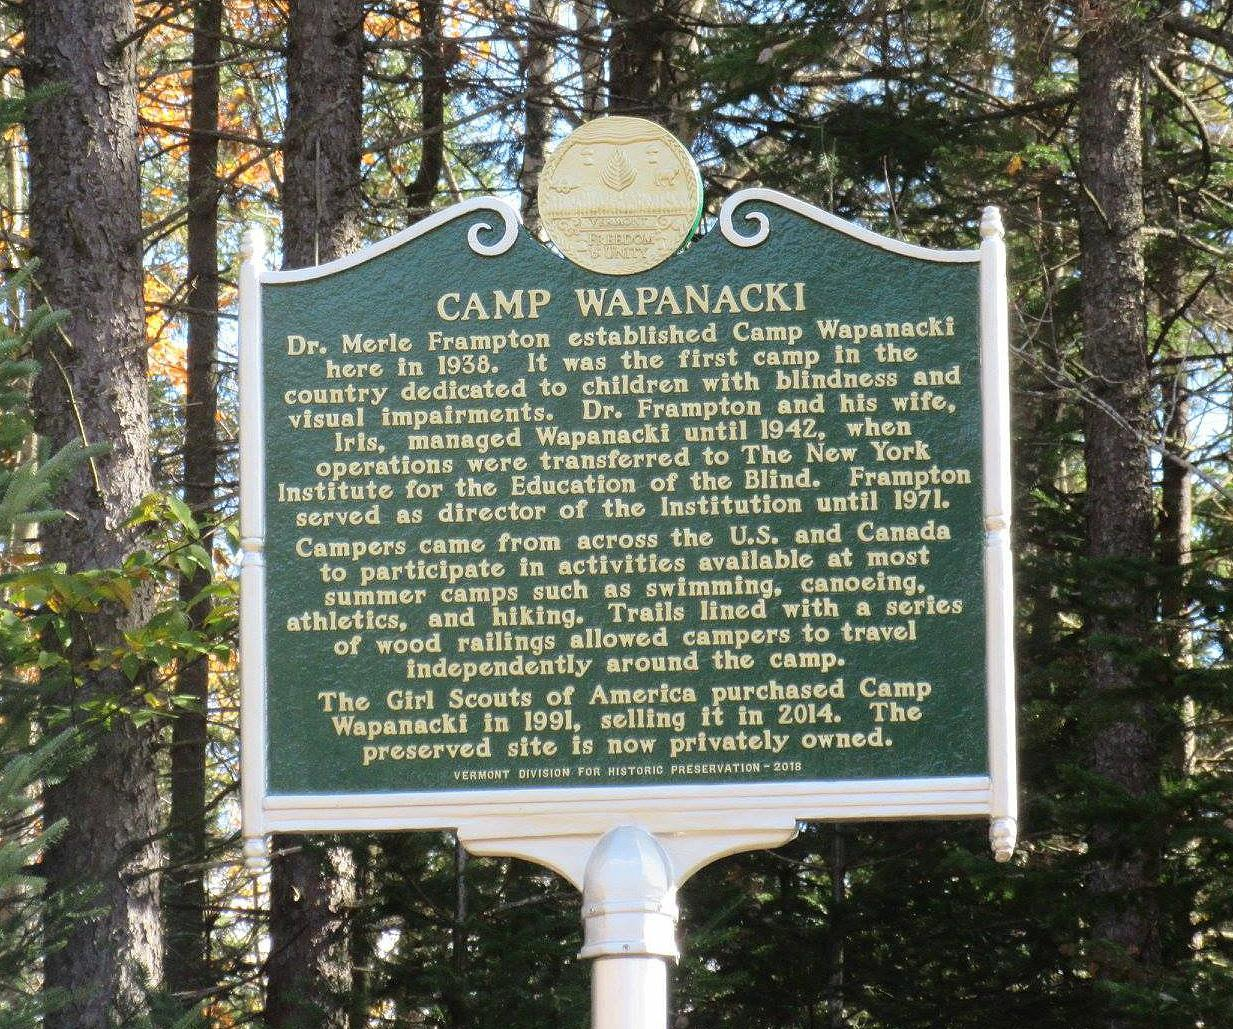 Newly installed Historical marker placed at Wapanacki in 2018